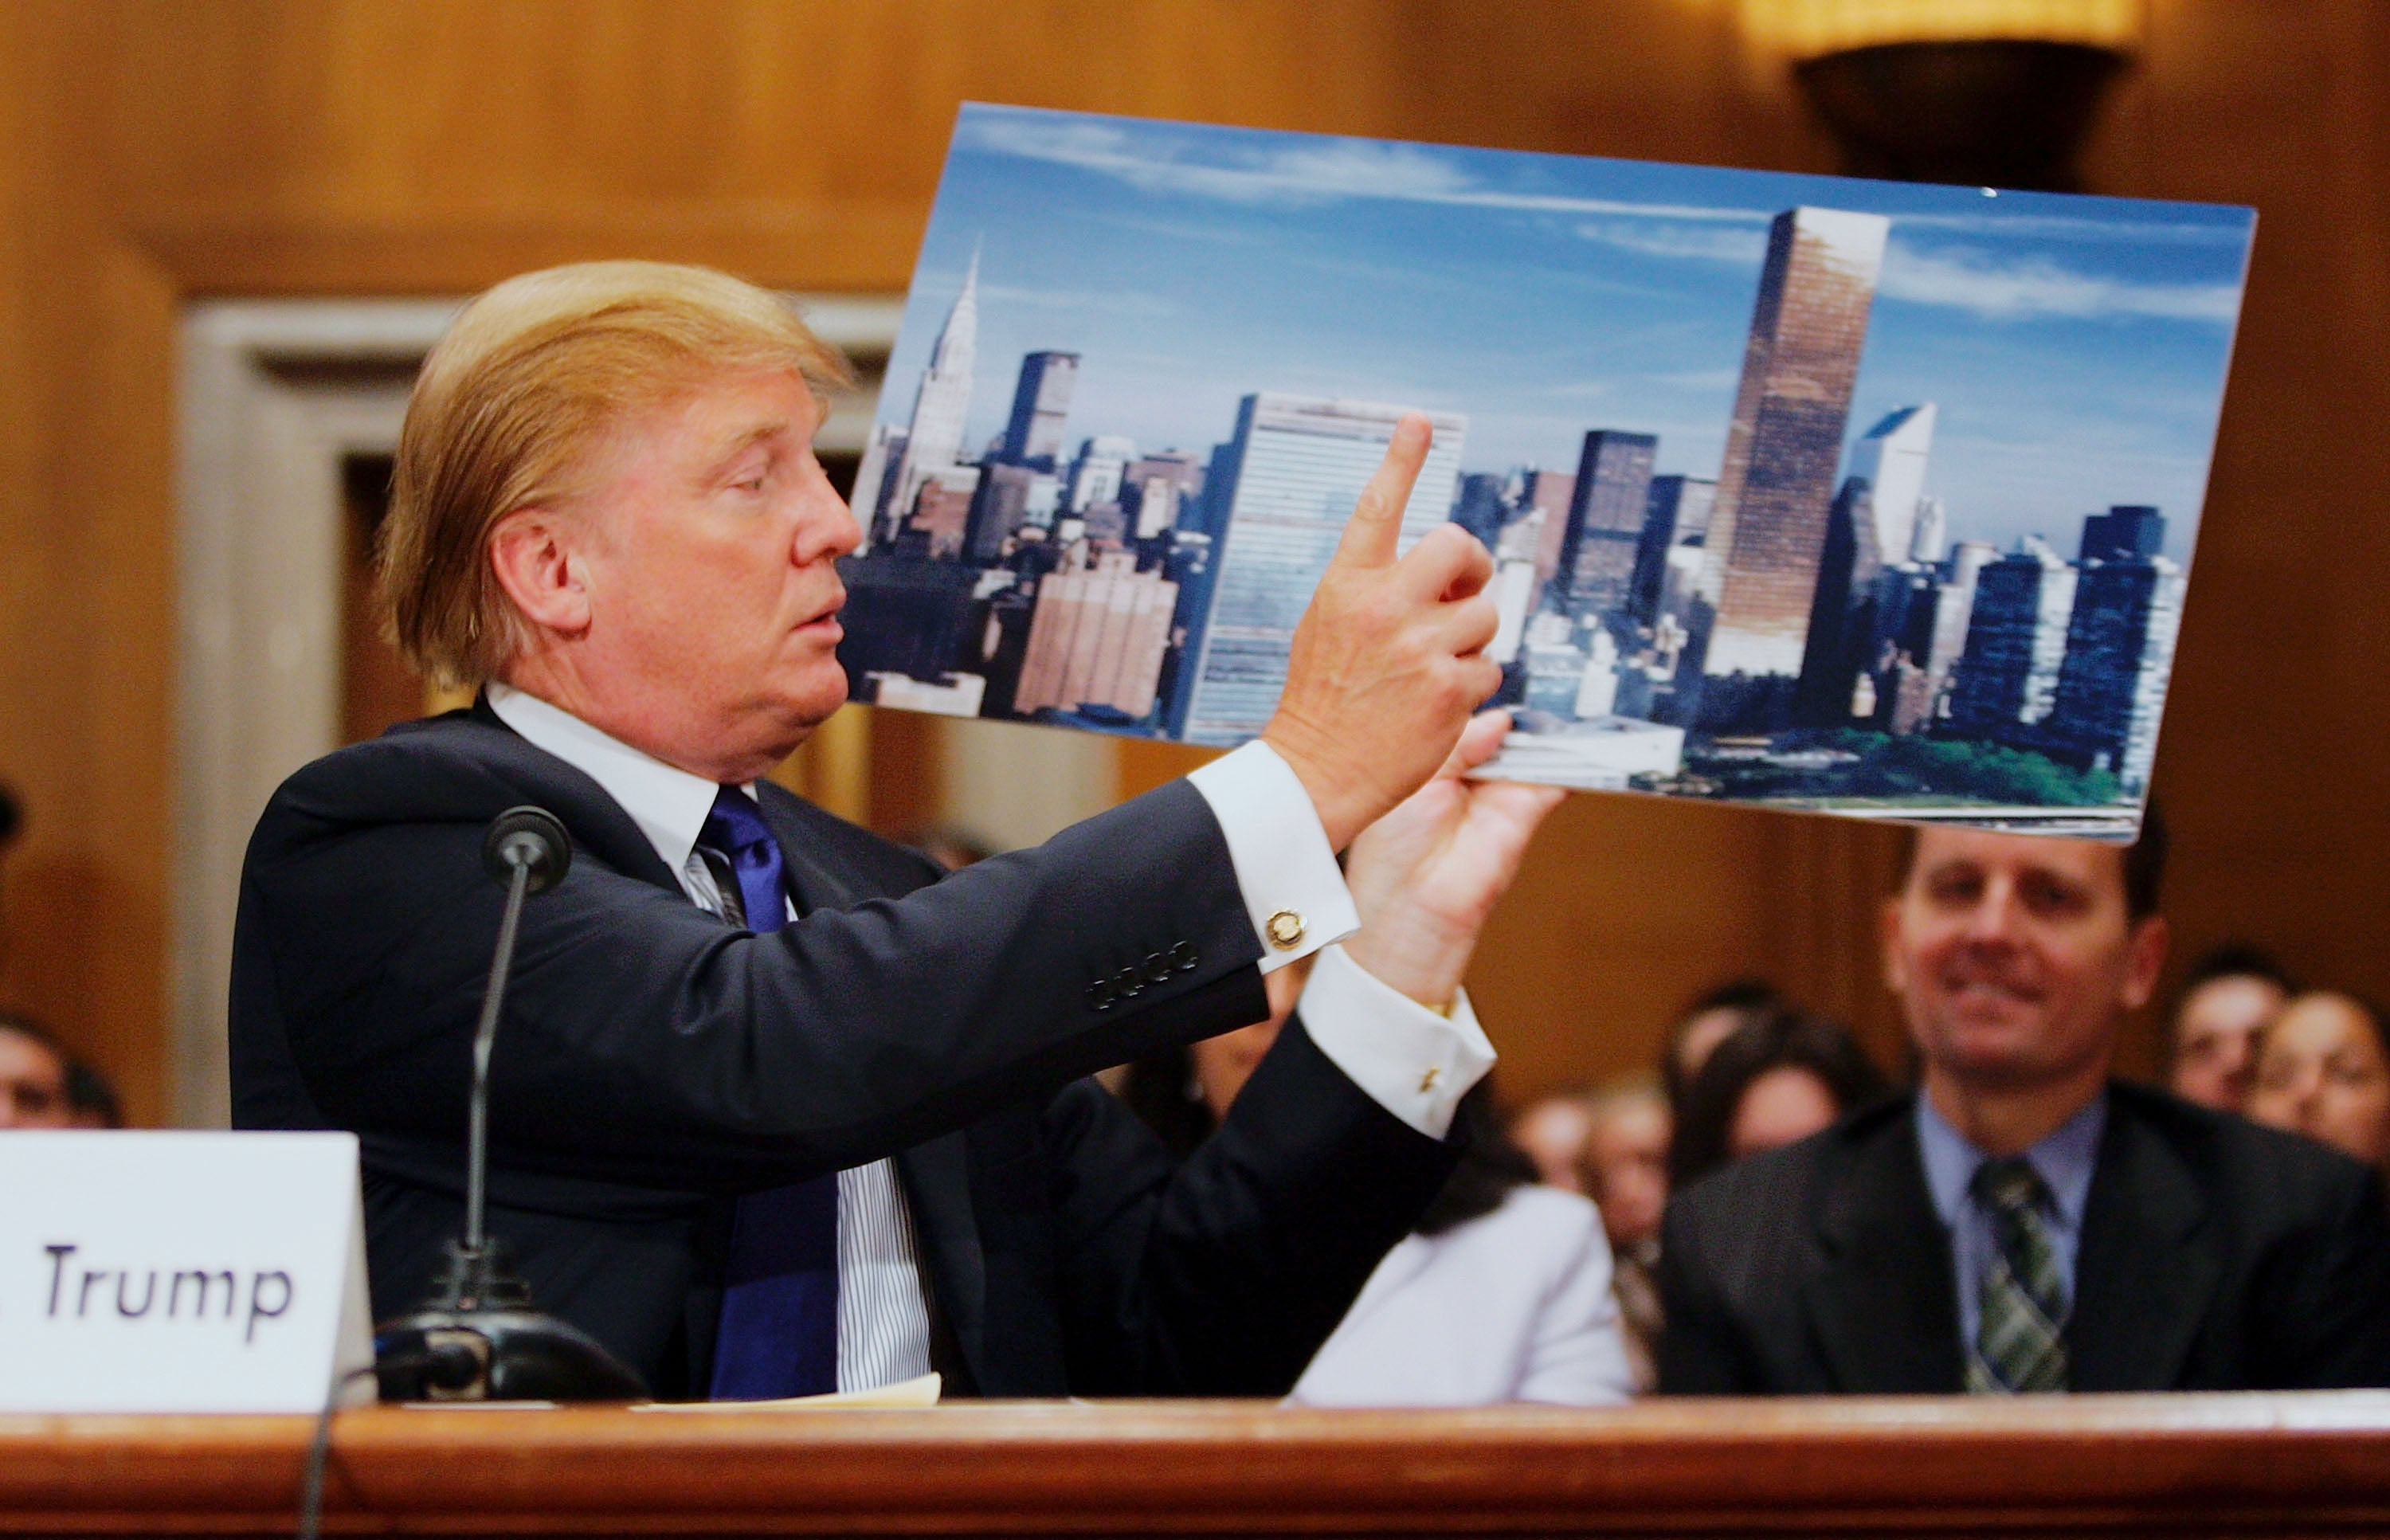 Donald Trump with a photo of the Trump World Tower, where the individual attesting to his alleged affair once worked, in Washington D.C. in 2005.